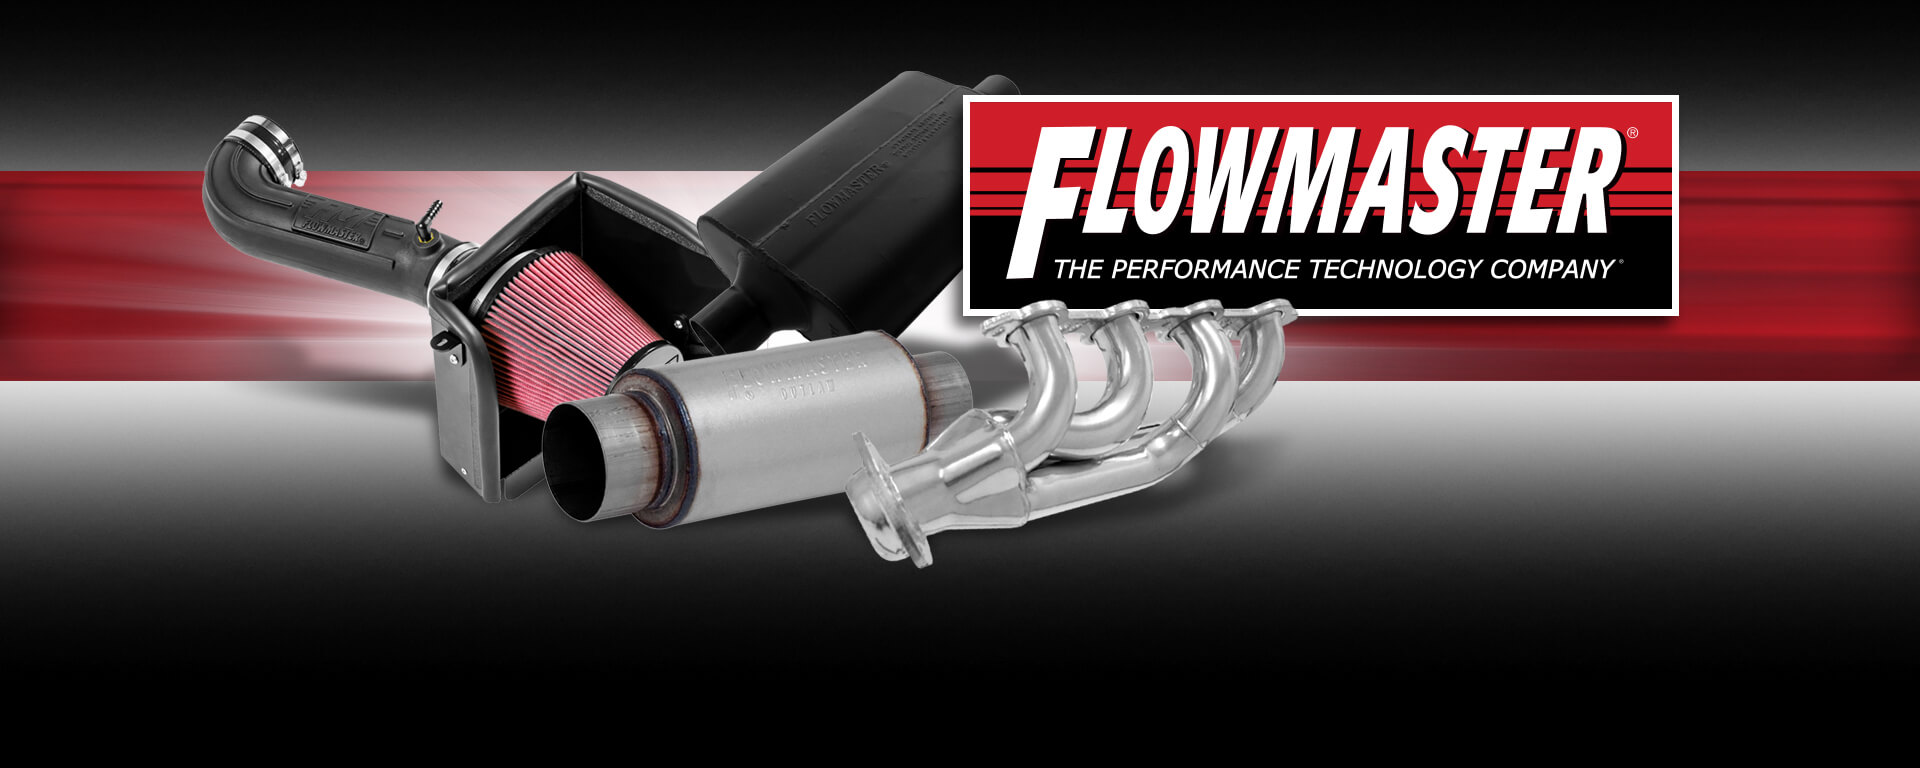 We Install Flowmaster Performance Muffler Exhaust Systems